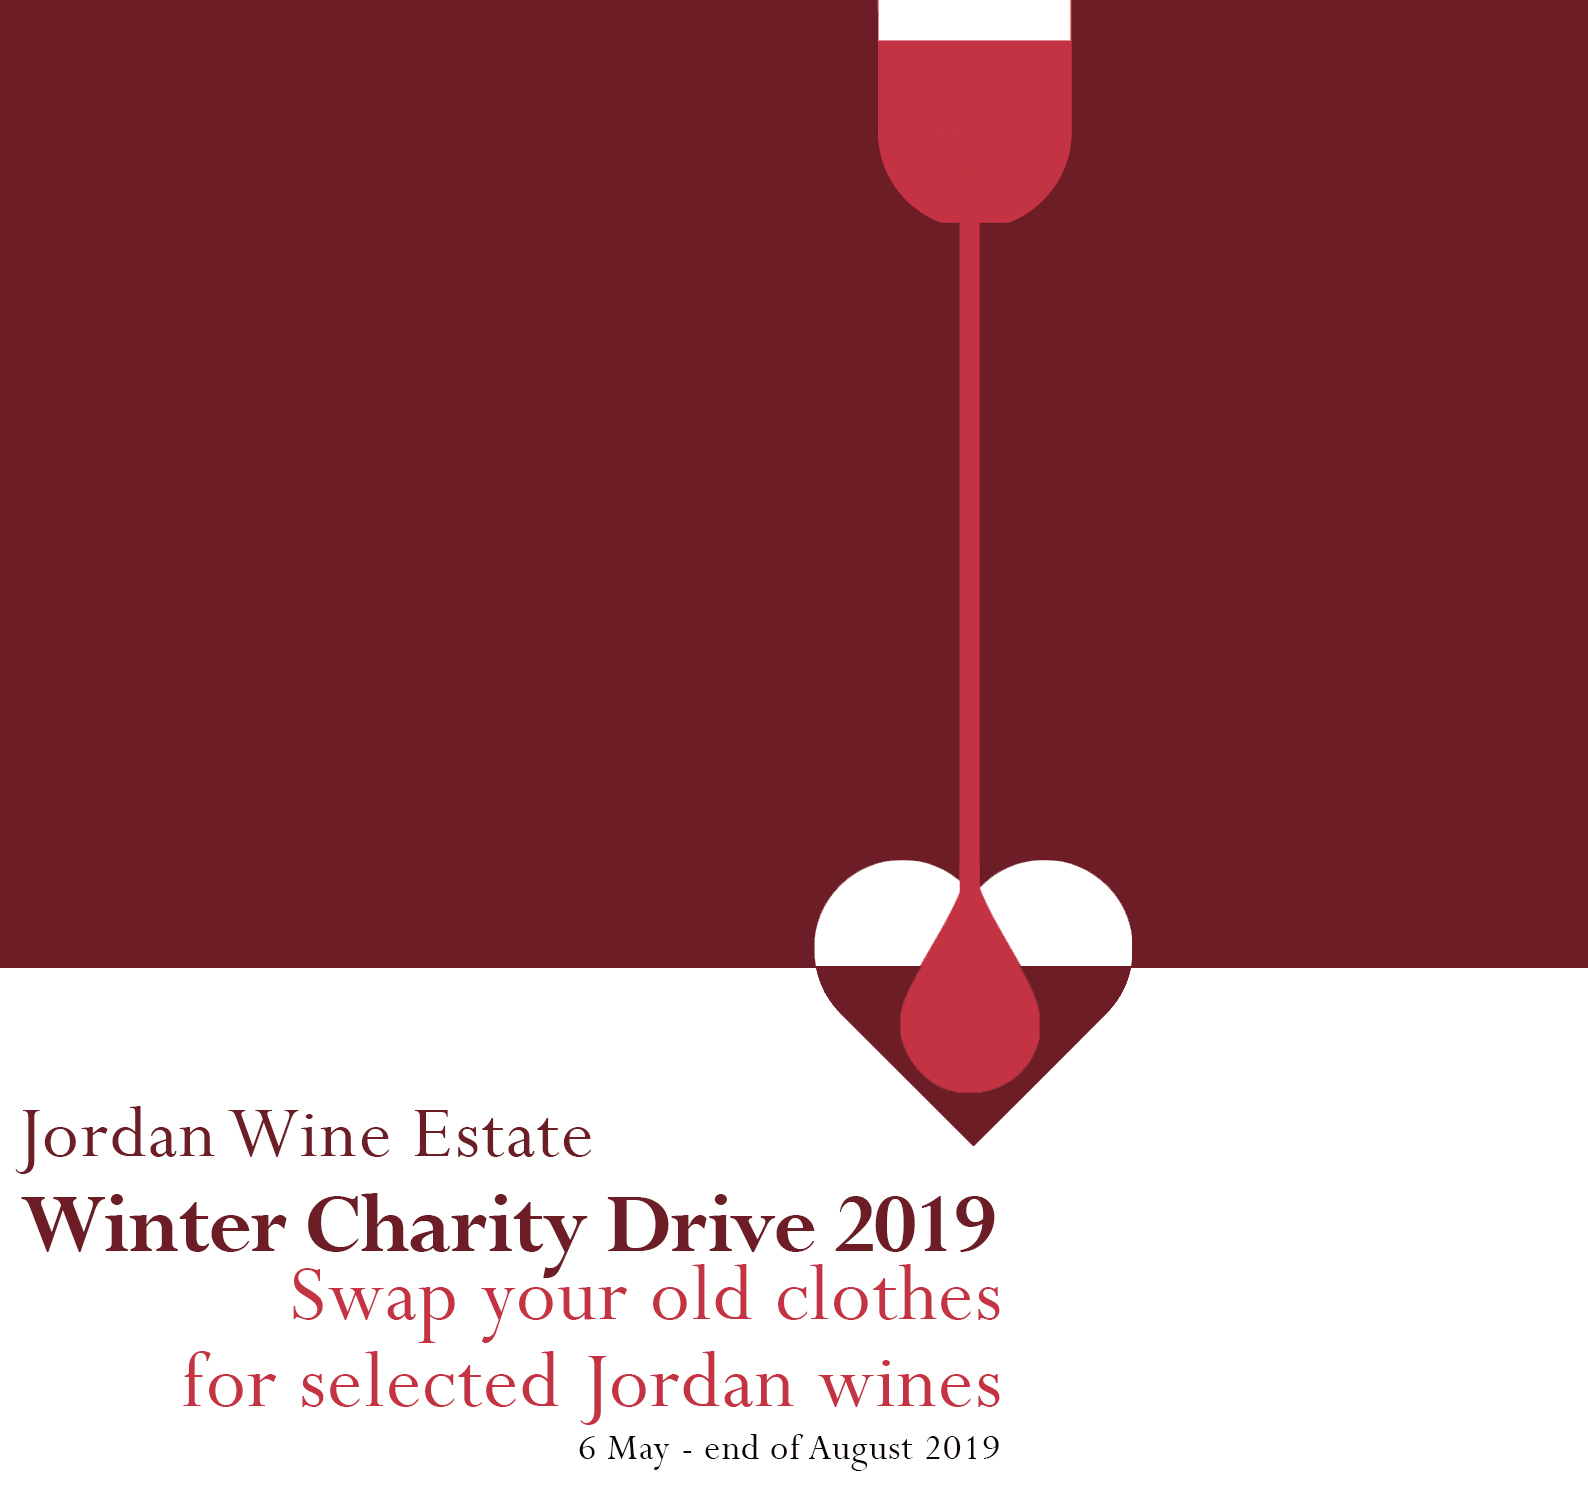 Winter Charity Drive at Jordan Wine Estate photo